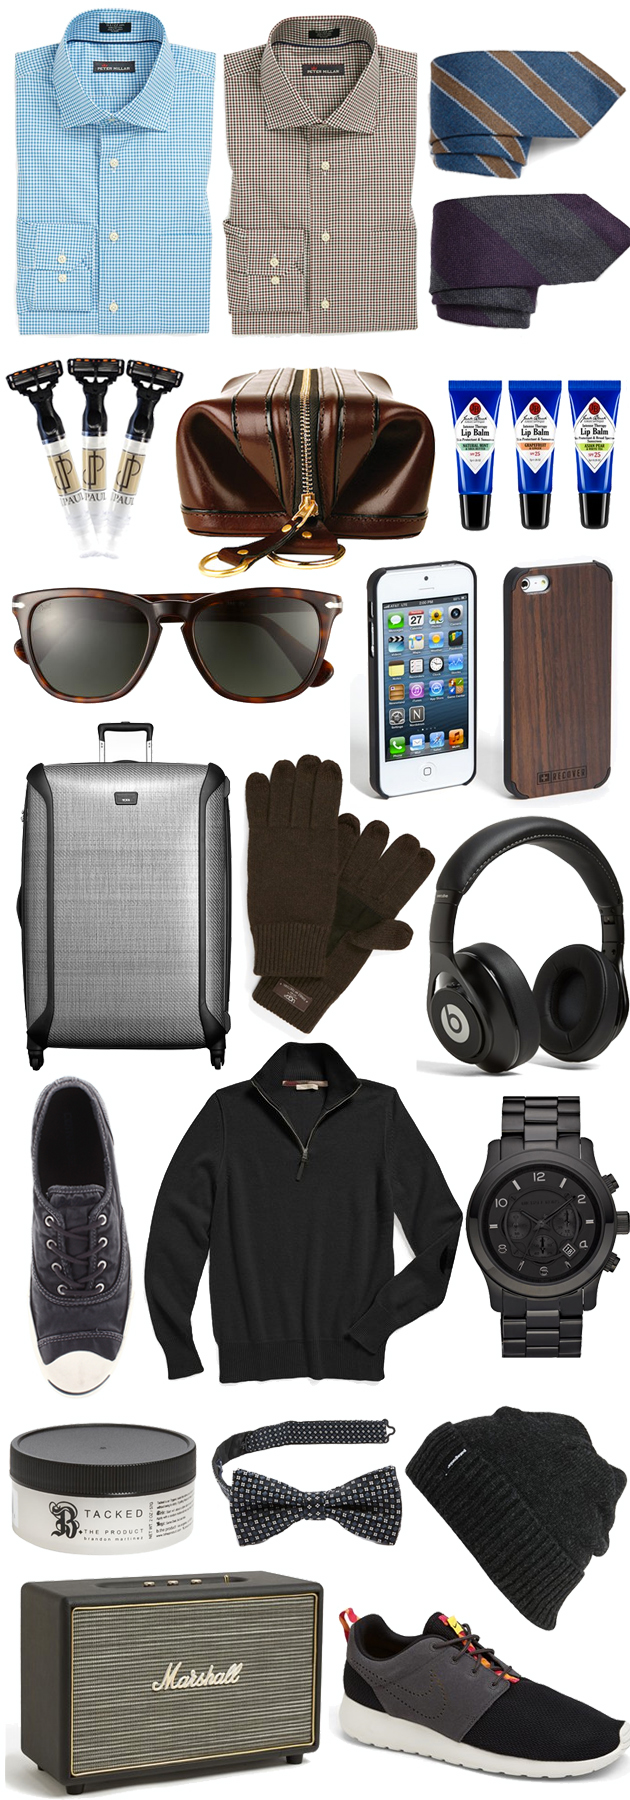 Gift guide for him for Gifts for men friends